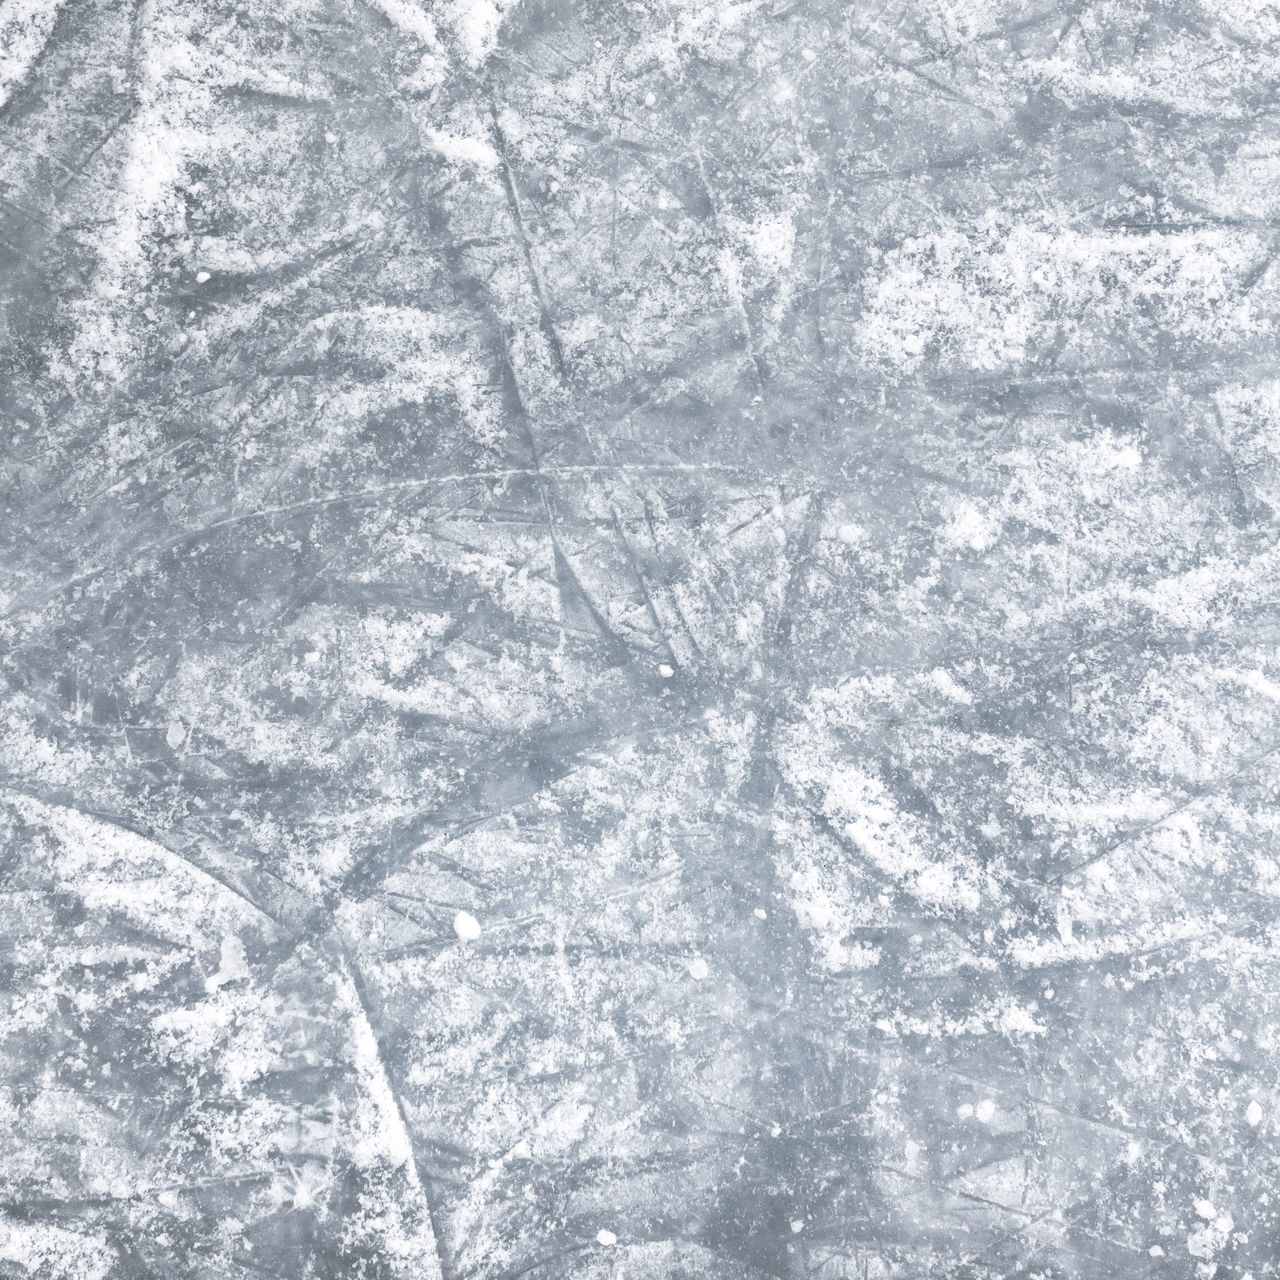 Ice background with marks from skating and hockey Abstract Arena Backgrounds Christmas Cold Empty Frosty Frozen Hockey Ice Lake Leisure Activity Recreational Pursuit Rink Season  Skate Skating Snow Sport Surface Textured  Traces Weather White Winter